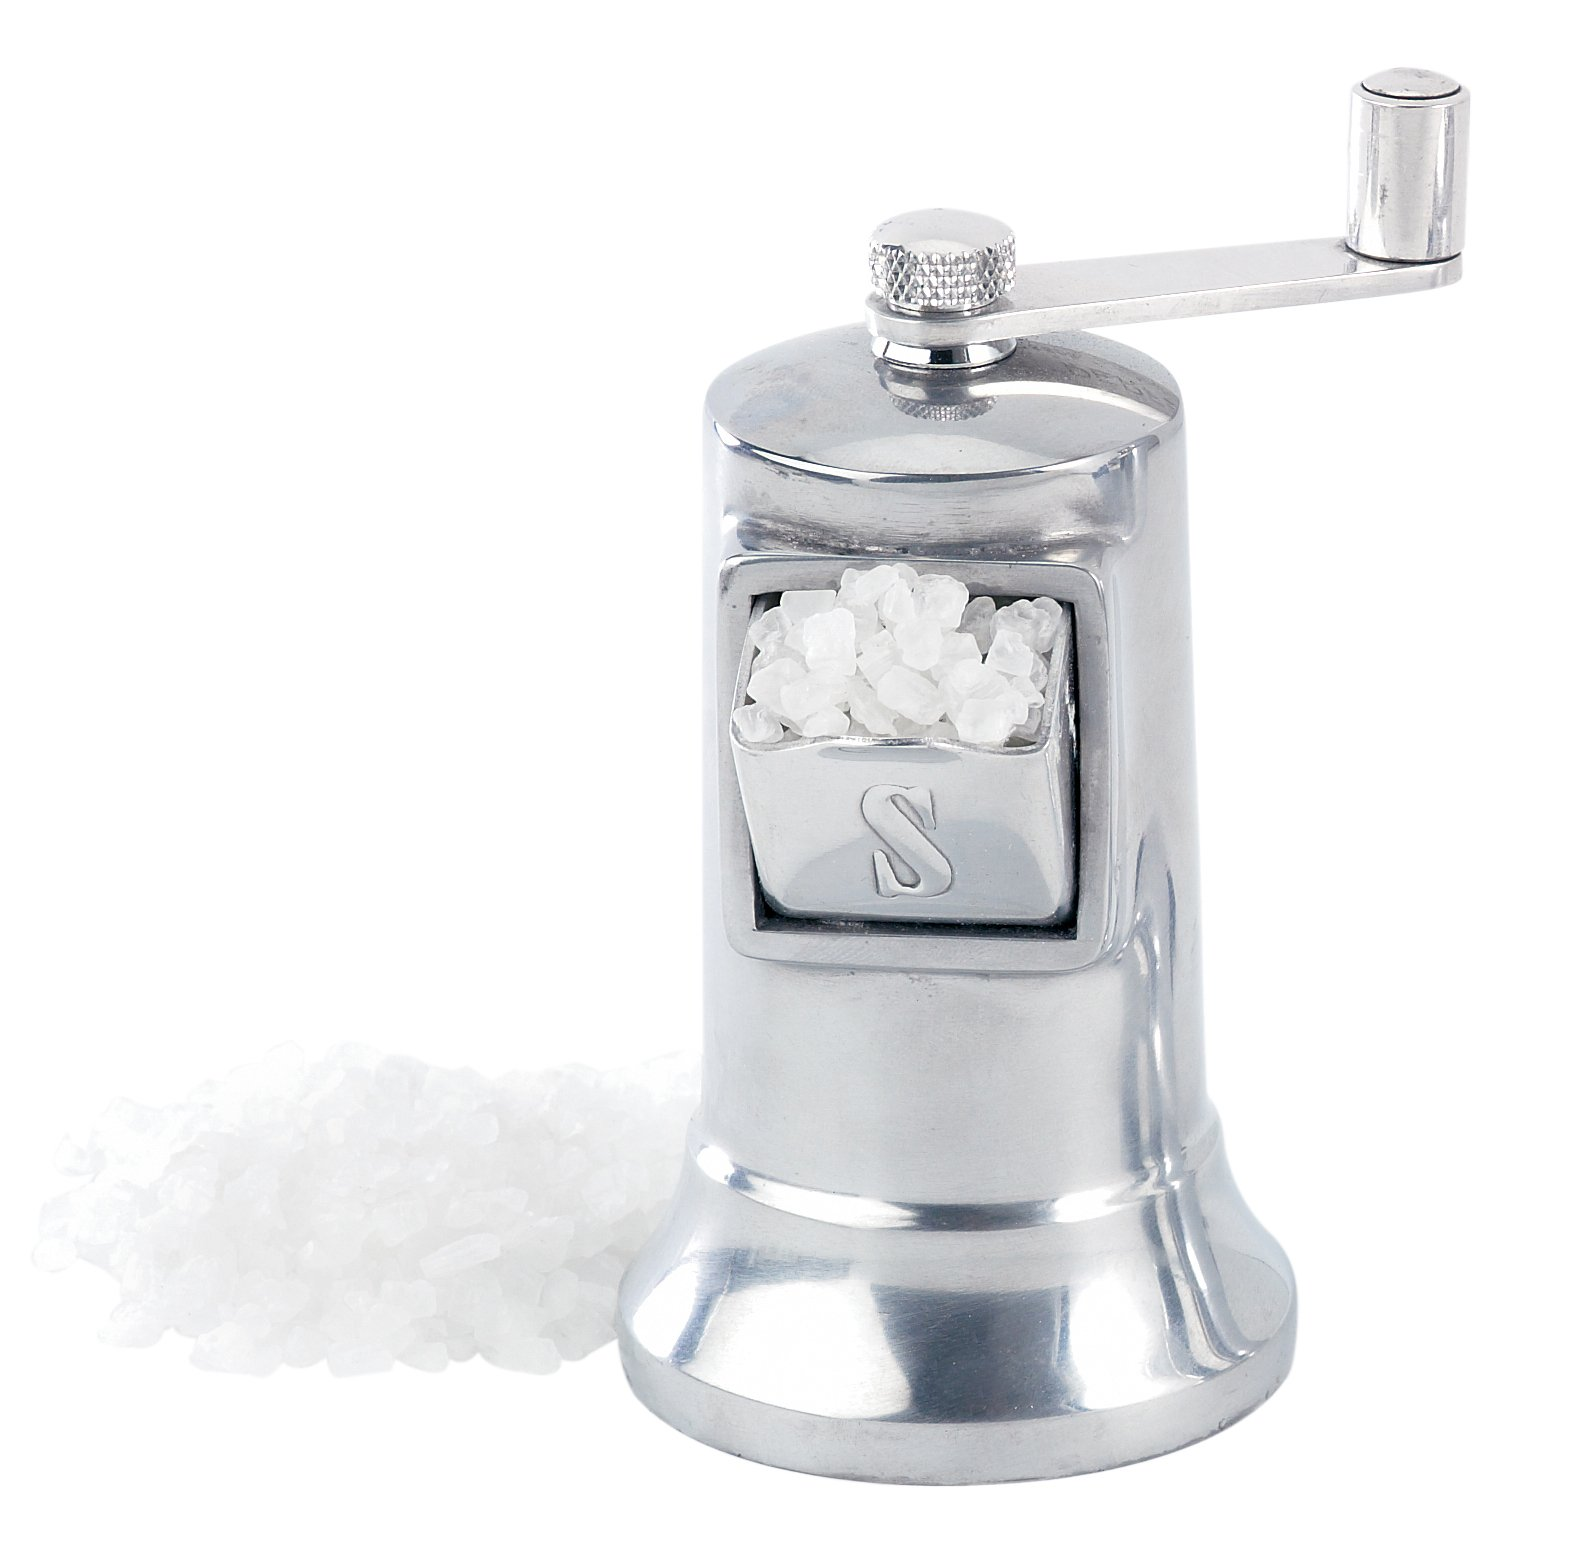 Perfex Adjustable Salt Grinder Mill, Made in France, Stainless Steel Mechanism, 4.5-Inches by Perfex (Image #3)